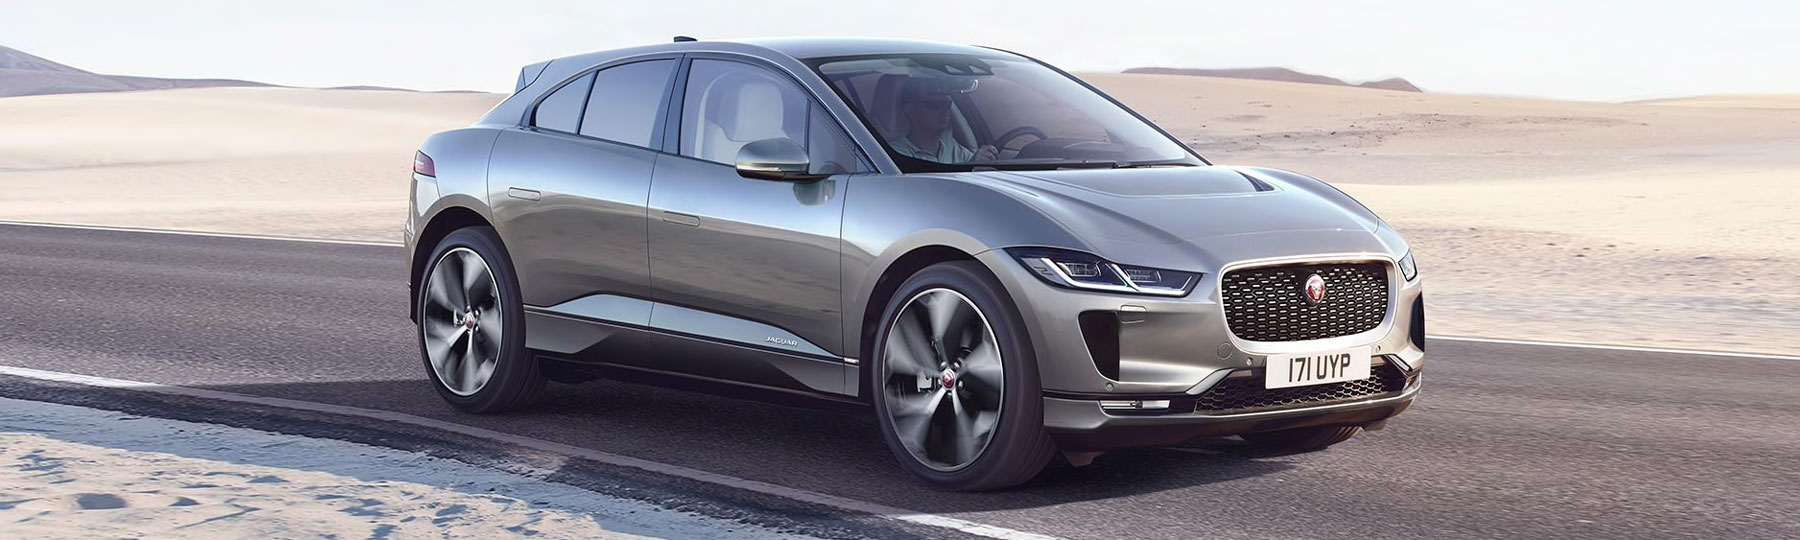 Jaguar I-PACE Personal Contract Hire Offer